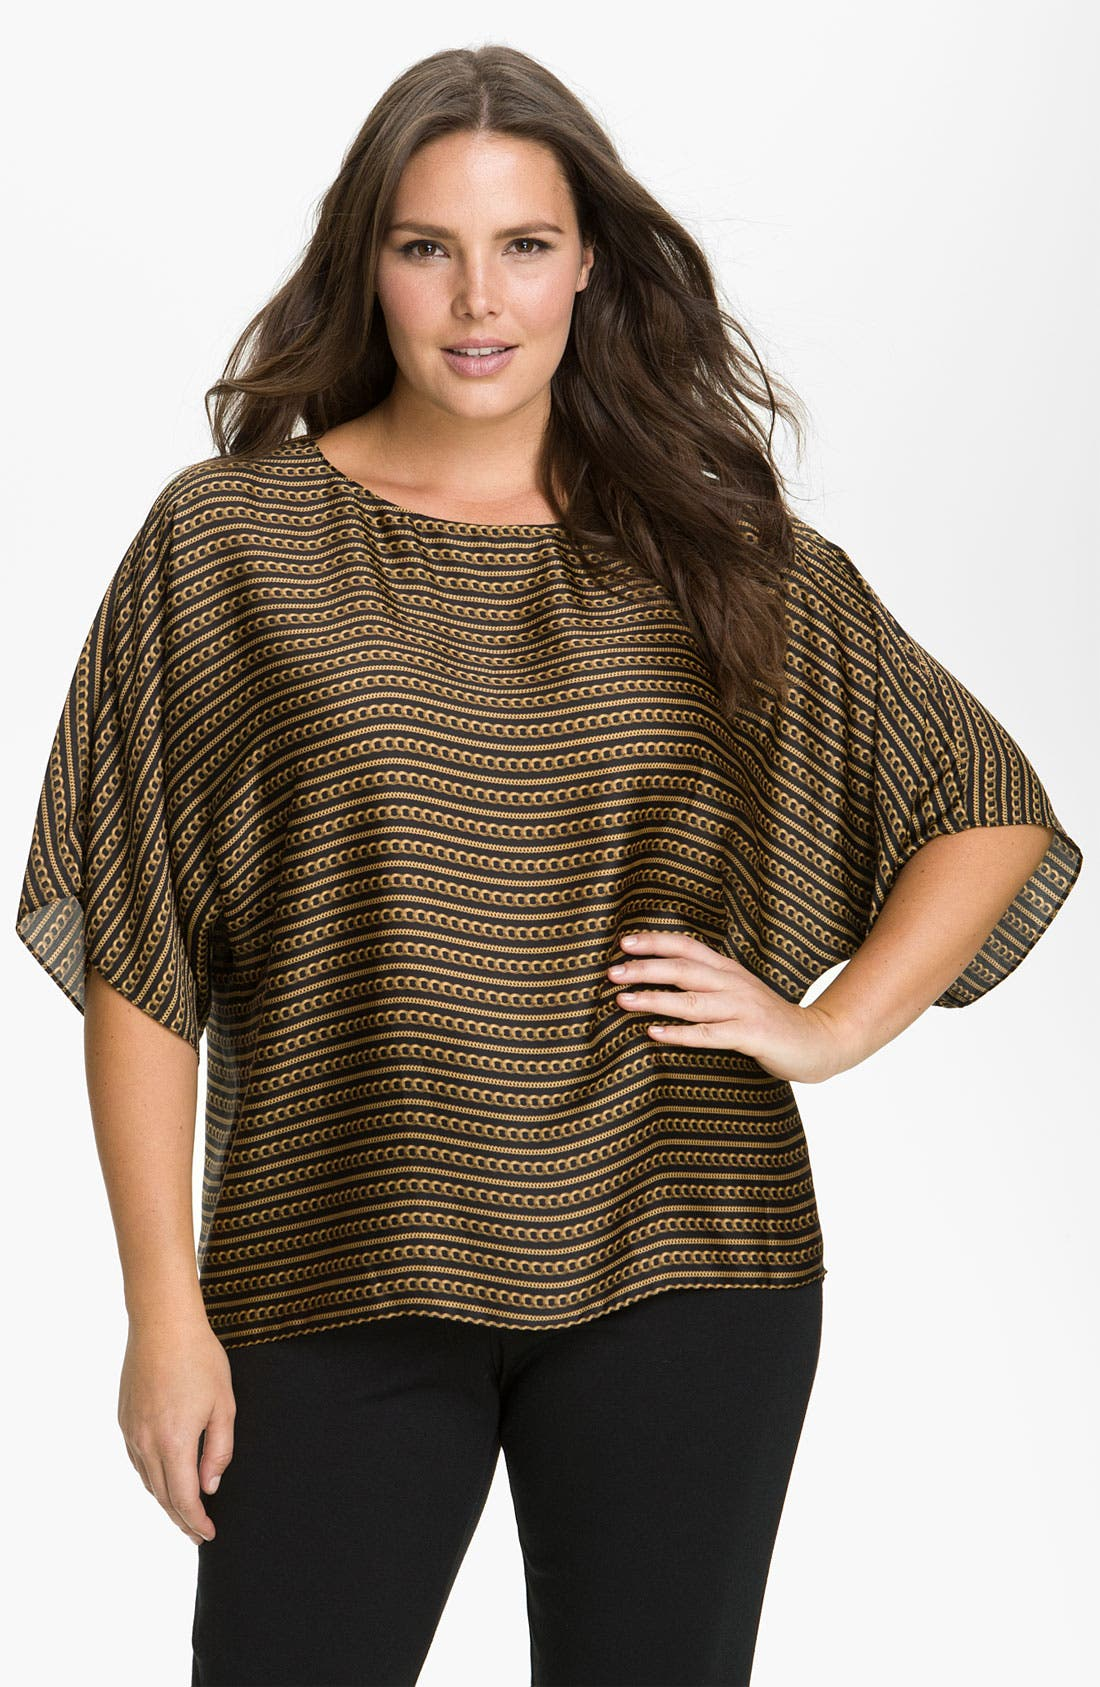 Alternate Image 1 Selected - MICHAEL Michael Kors 'Striped Chain' Dolman Sleeve Top (Plus)